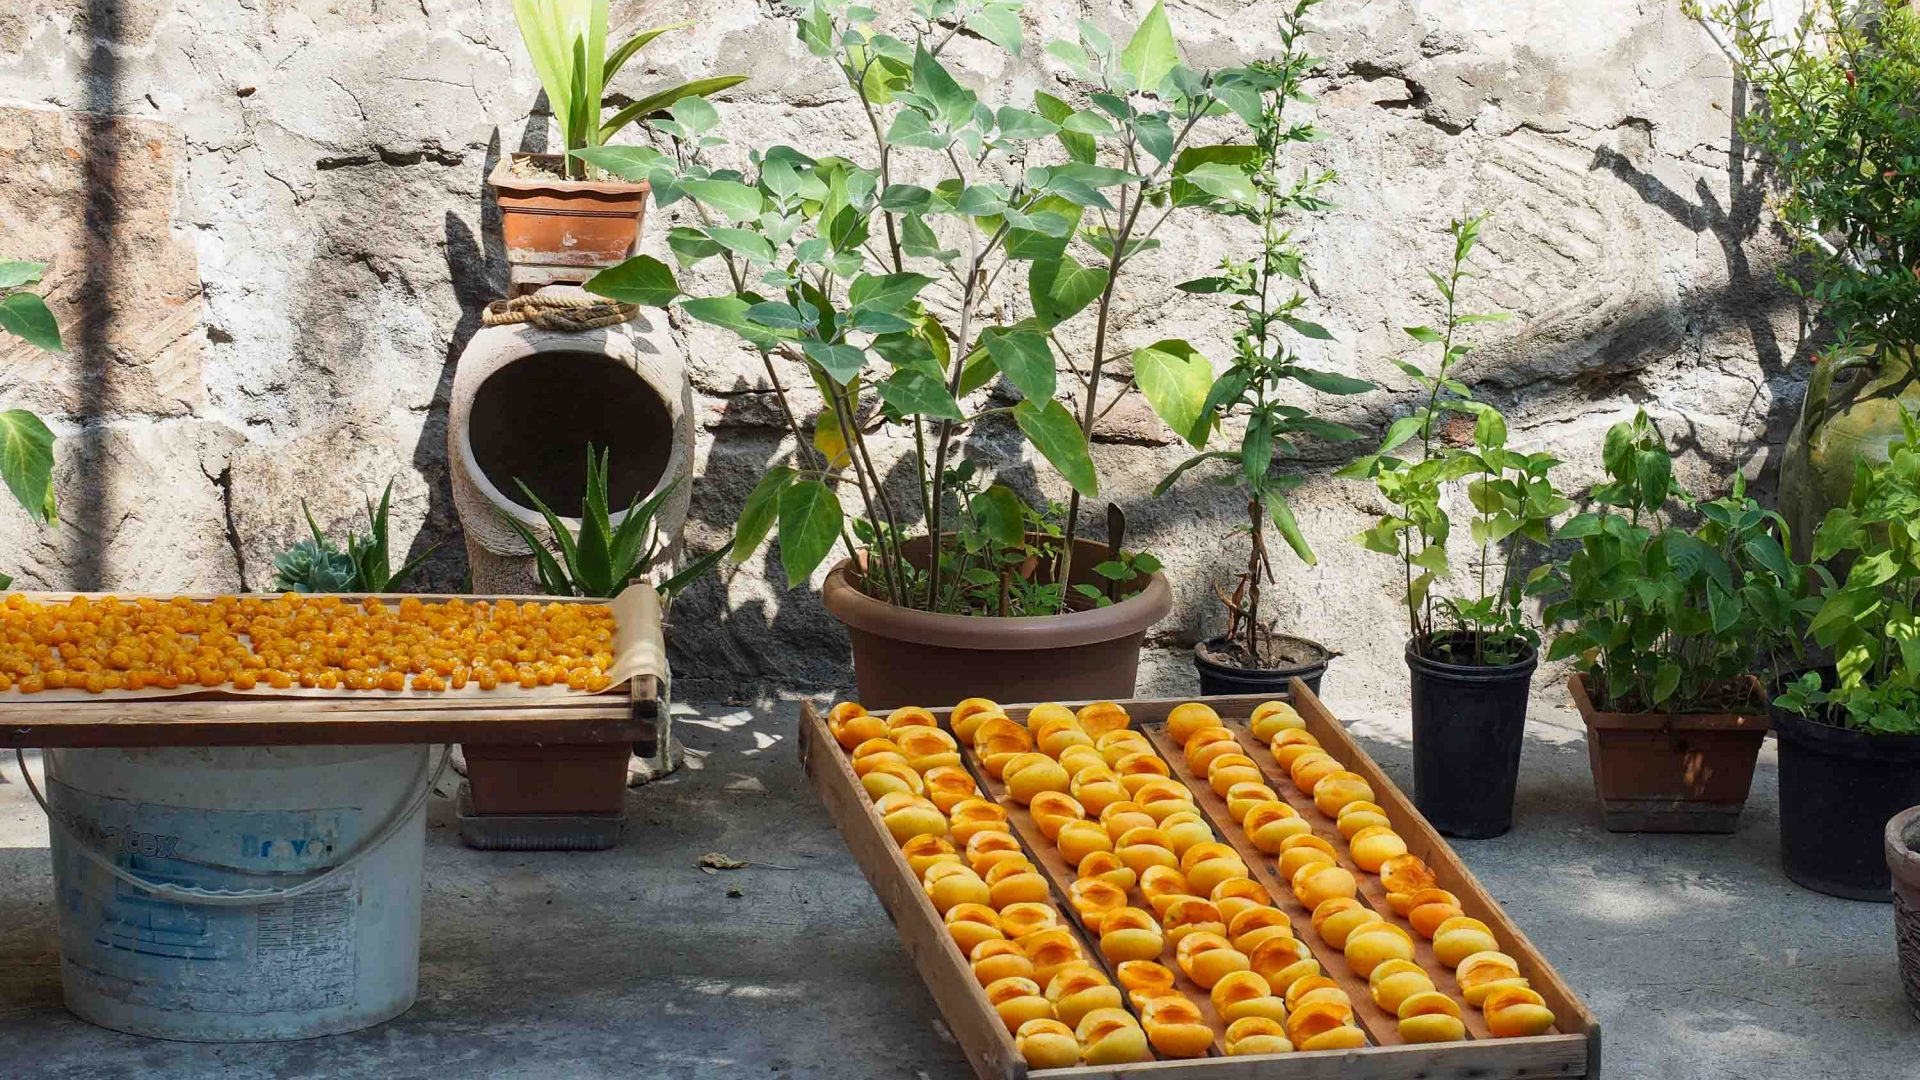 Apricots lie in rows drying.